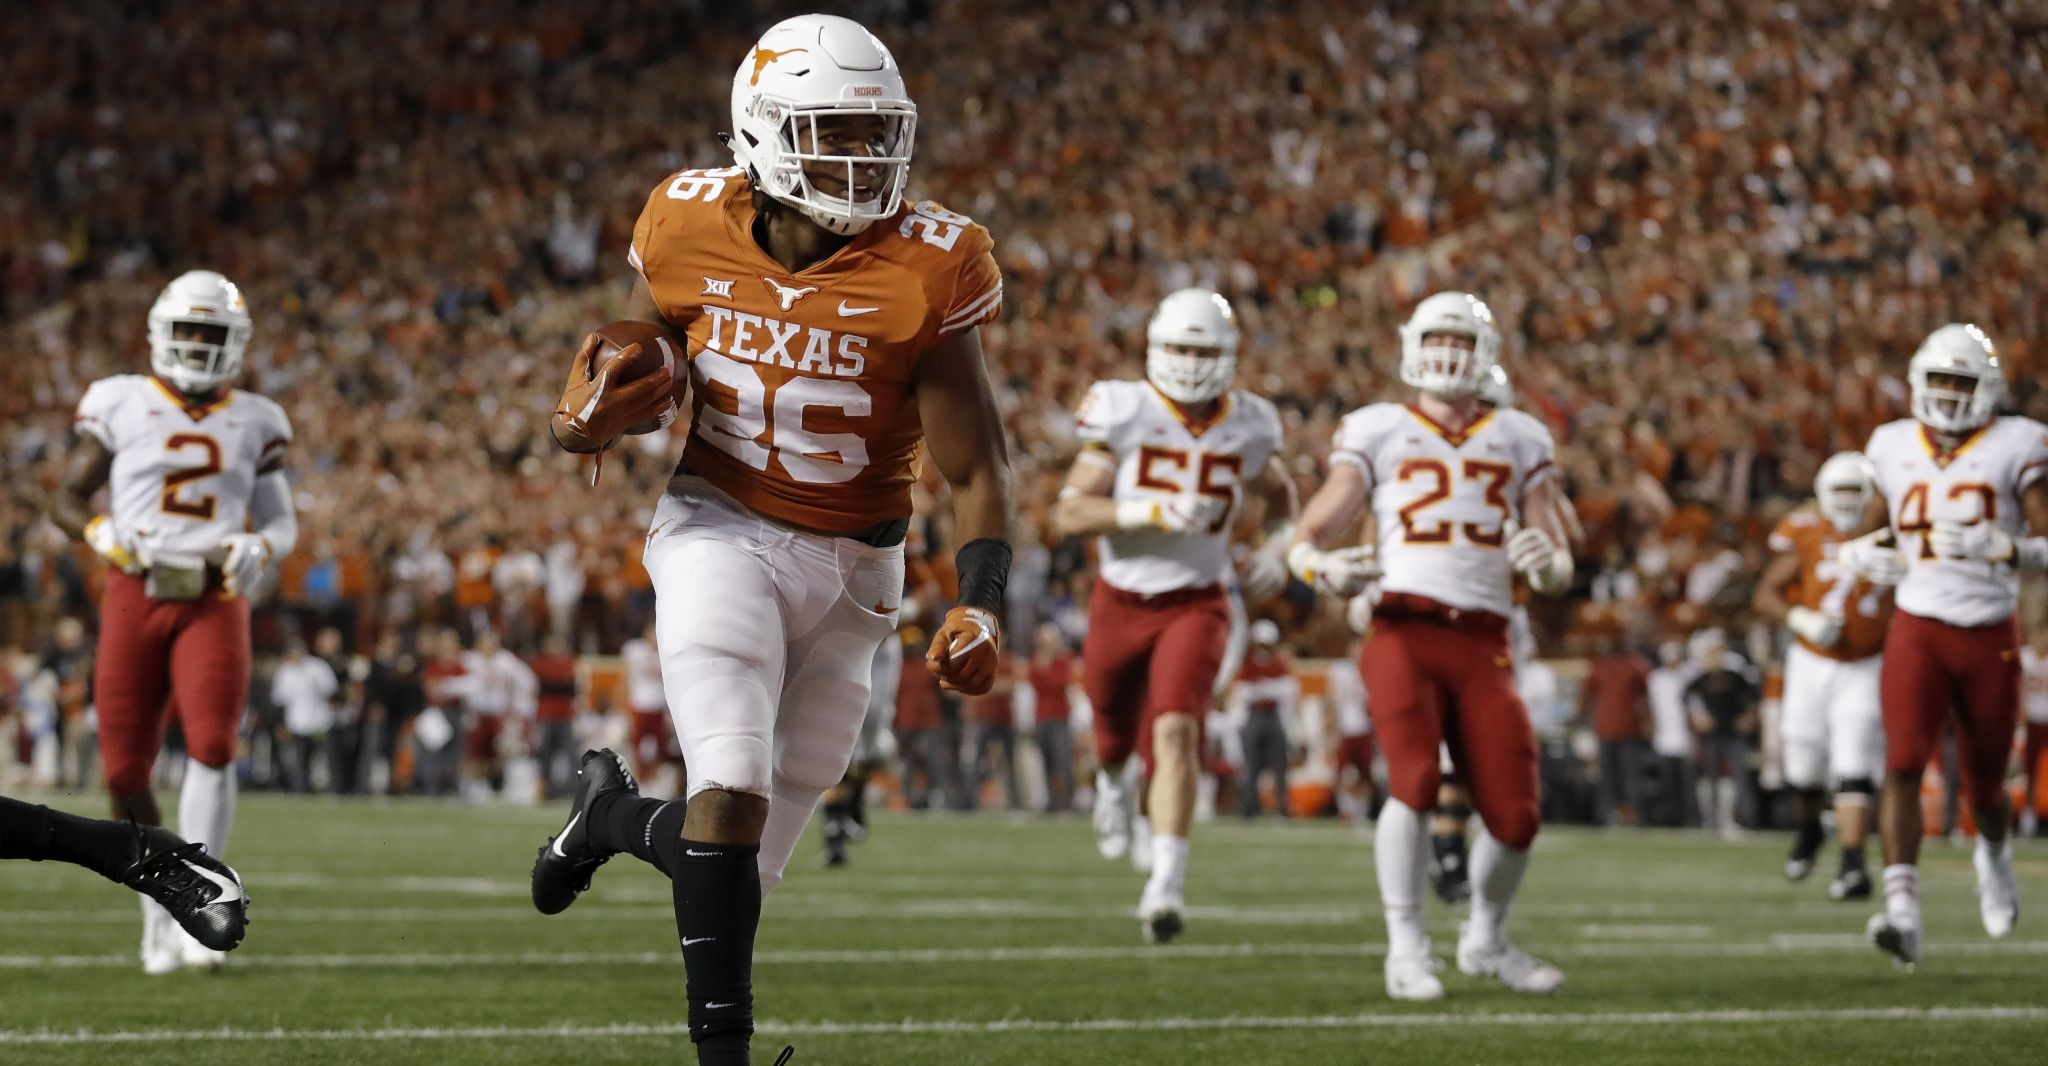 UT RB Keaontay Ingram poised for breakout campaign